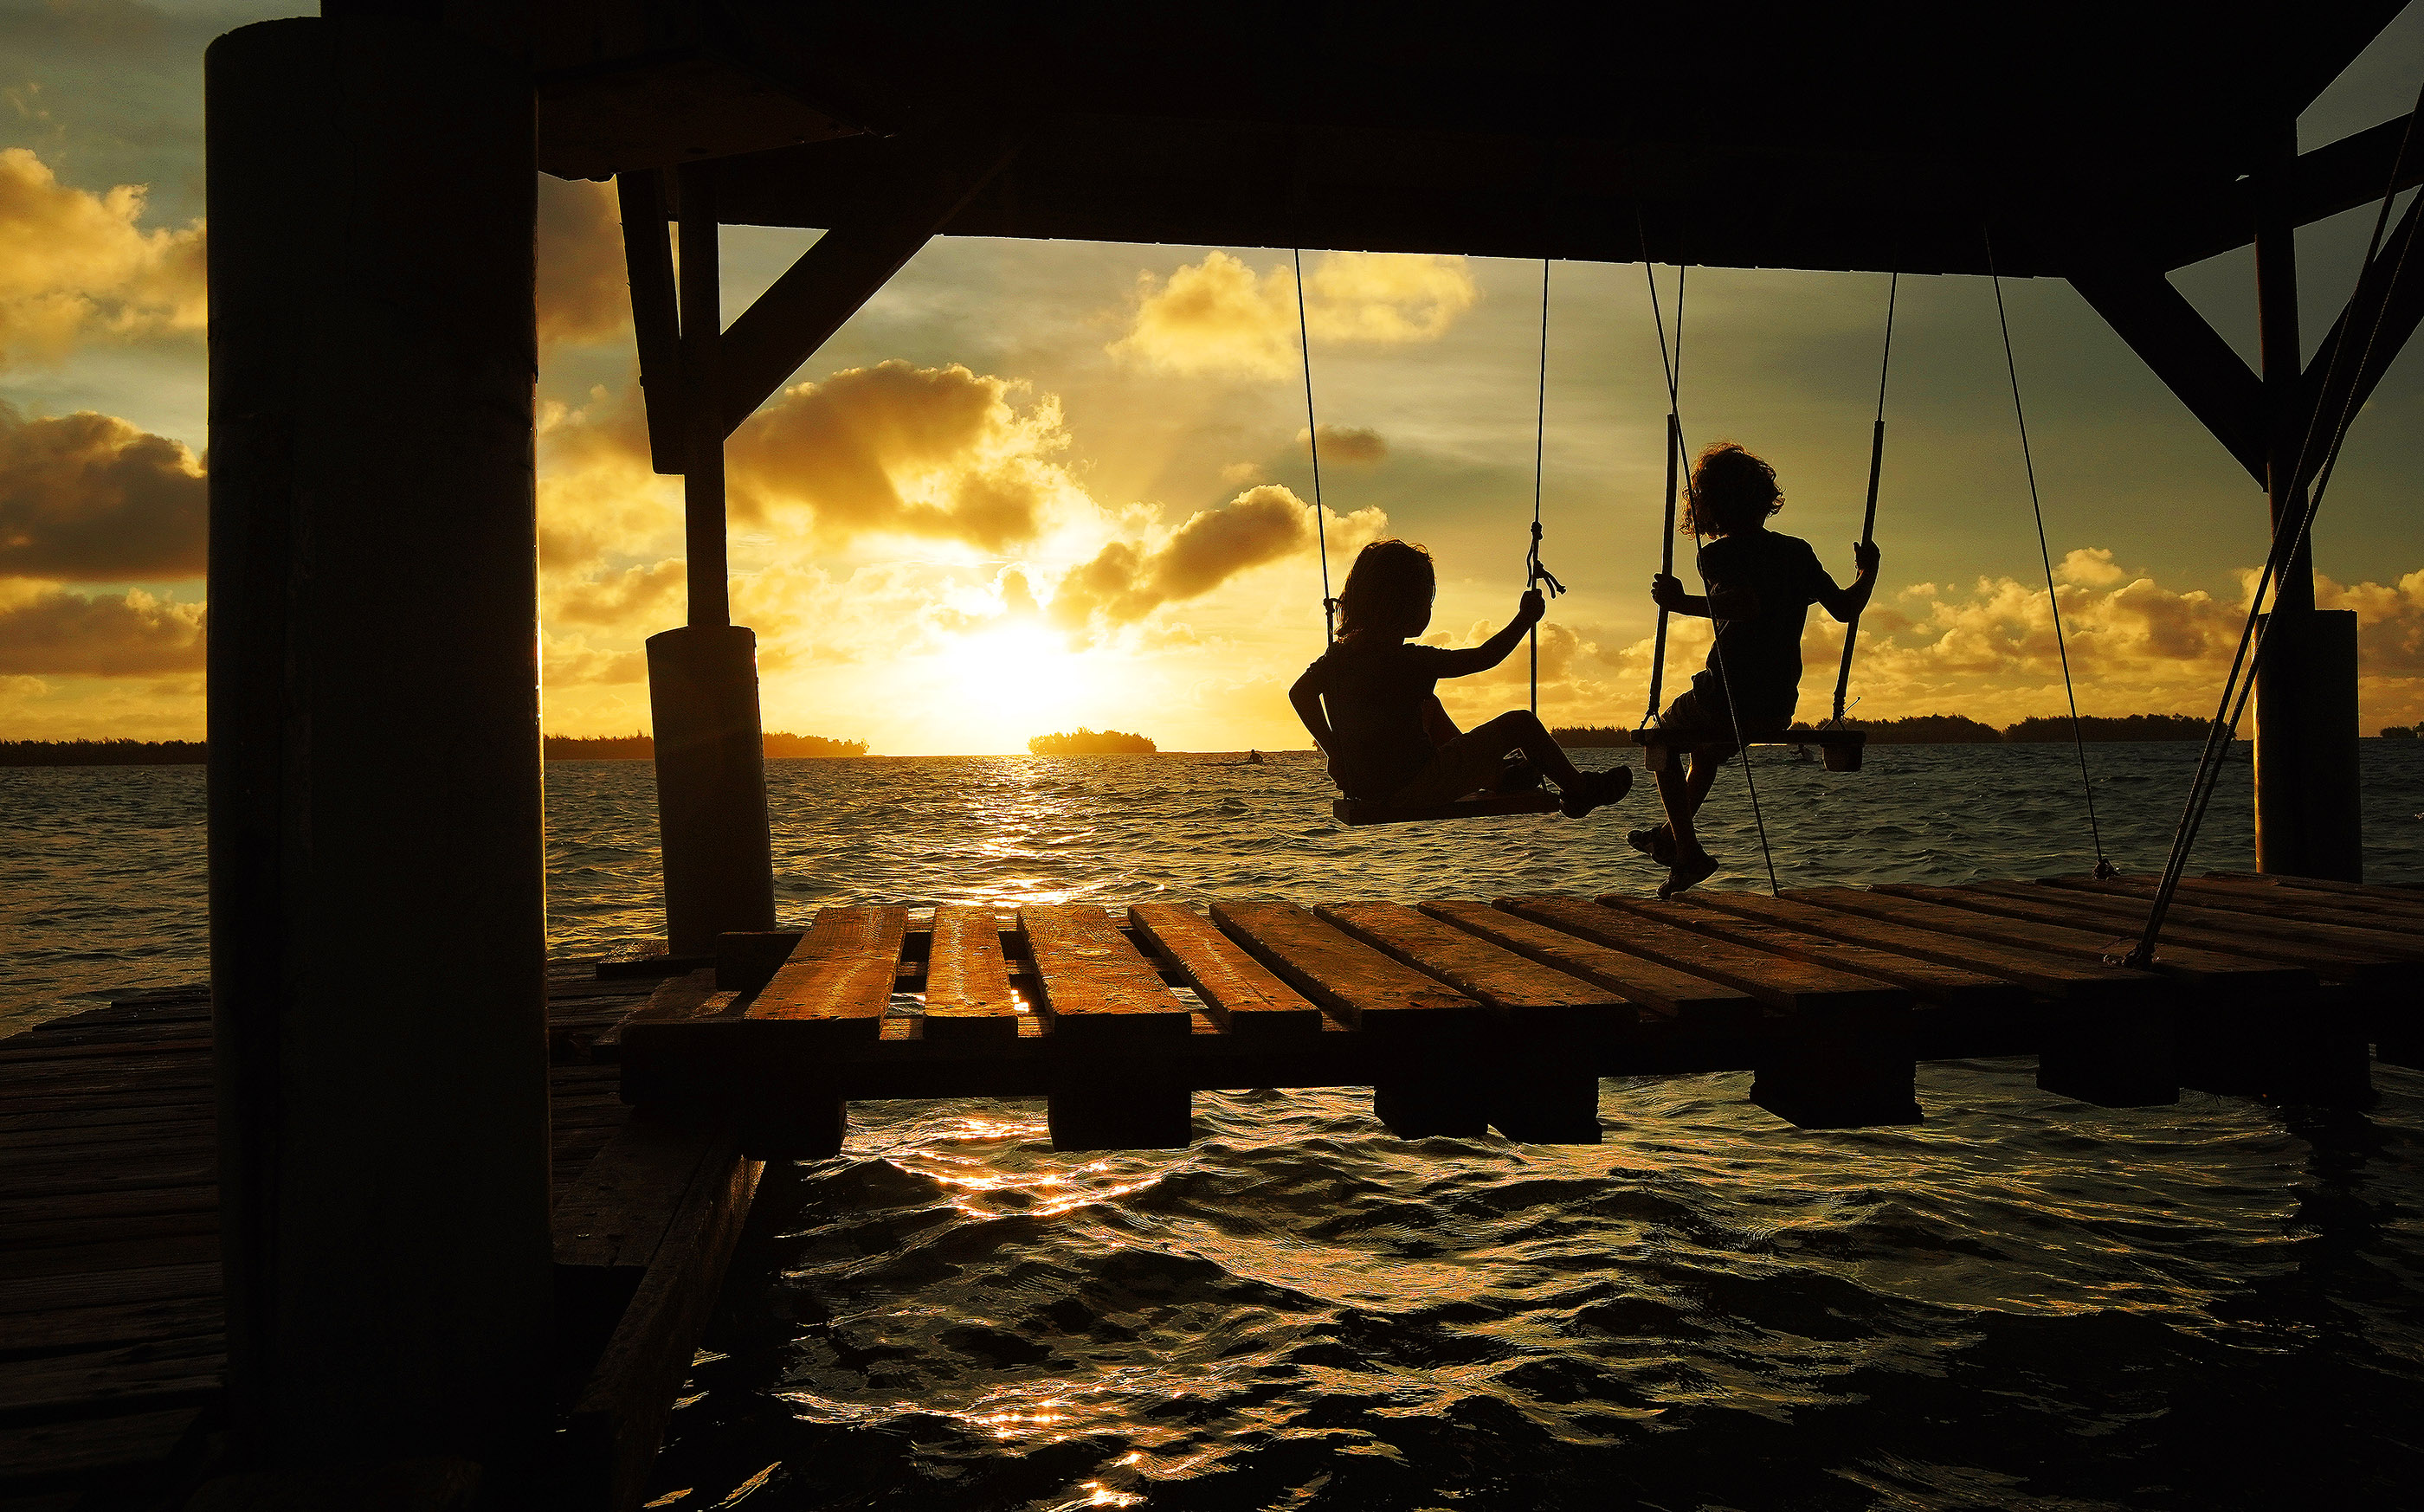 Kids play on swings as the sun sets in Bora Bora on May 27, 2019.